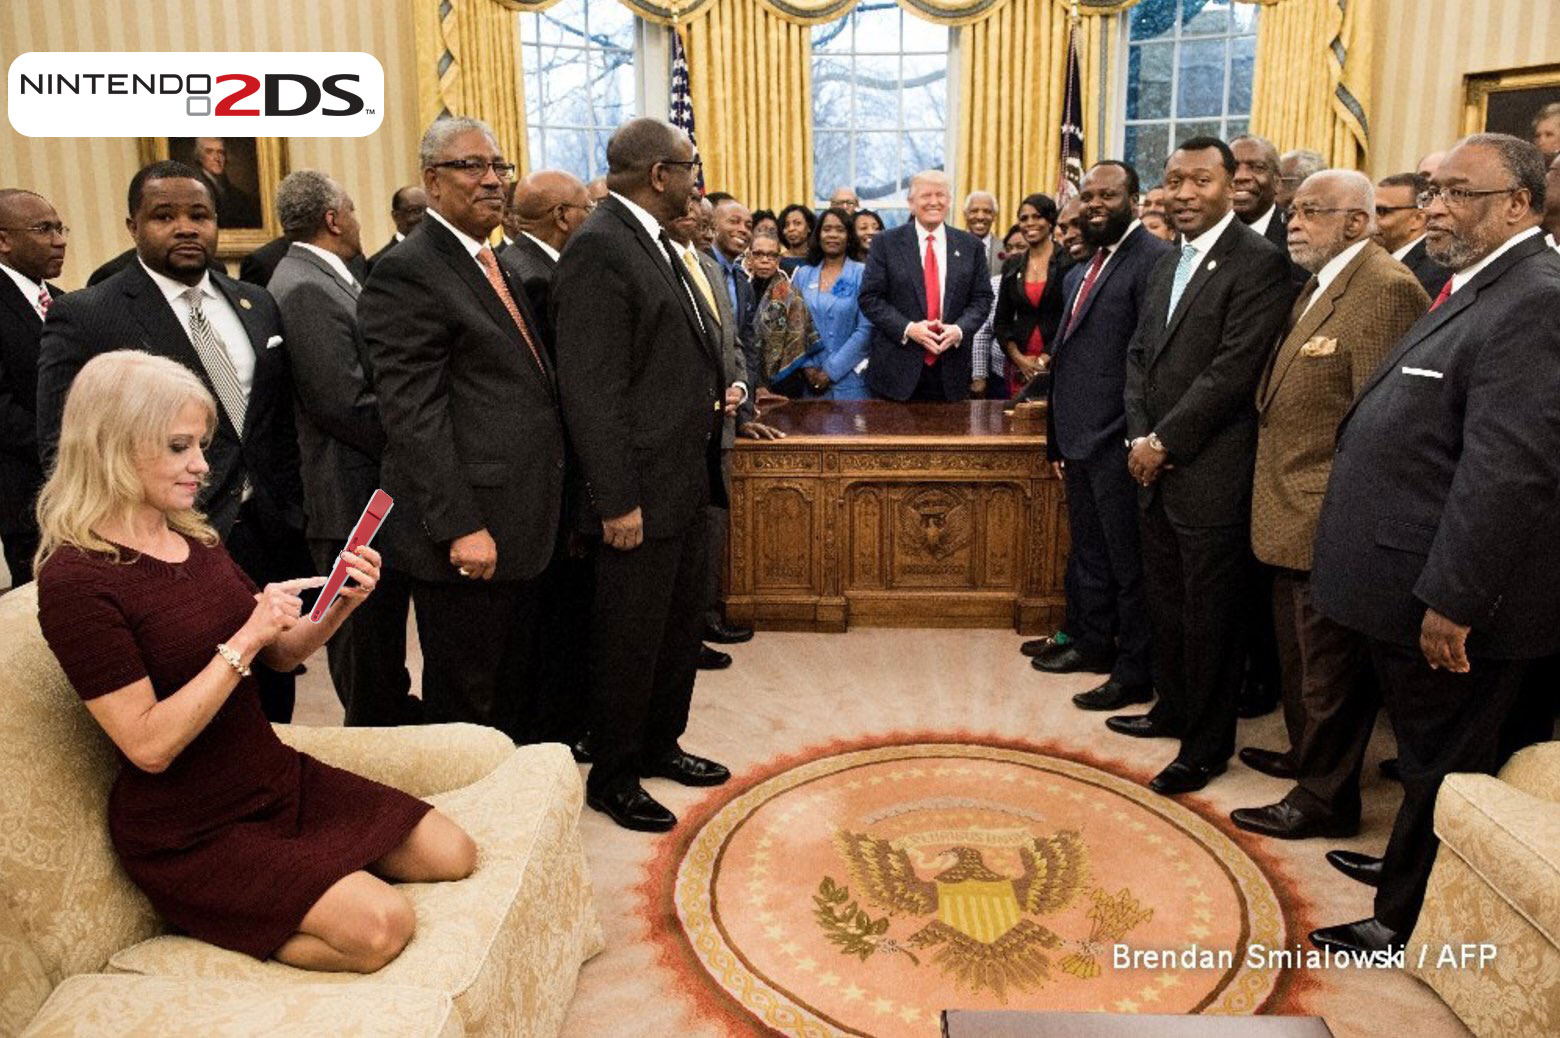 Playing games in the Oval Office